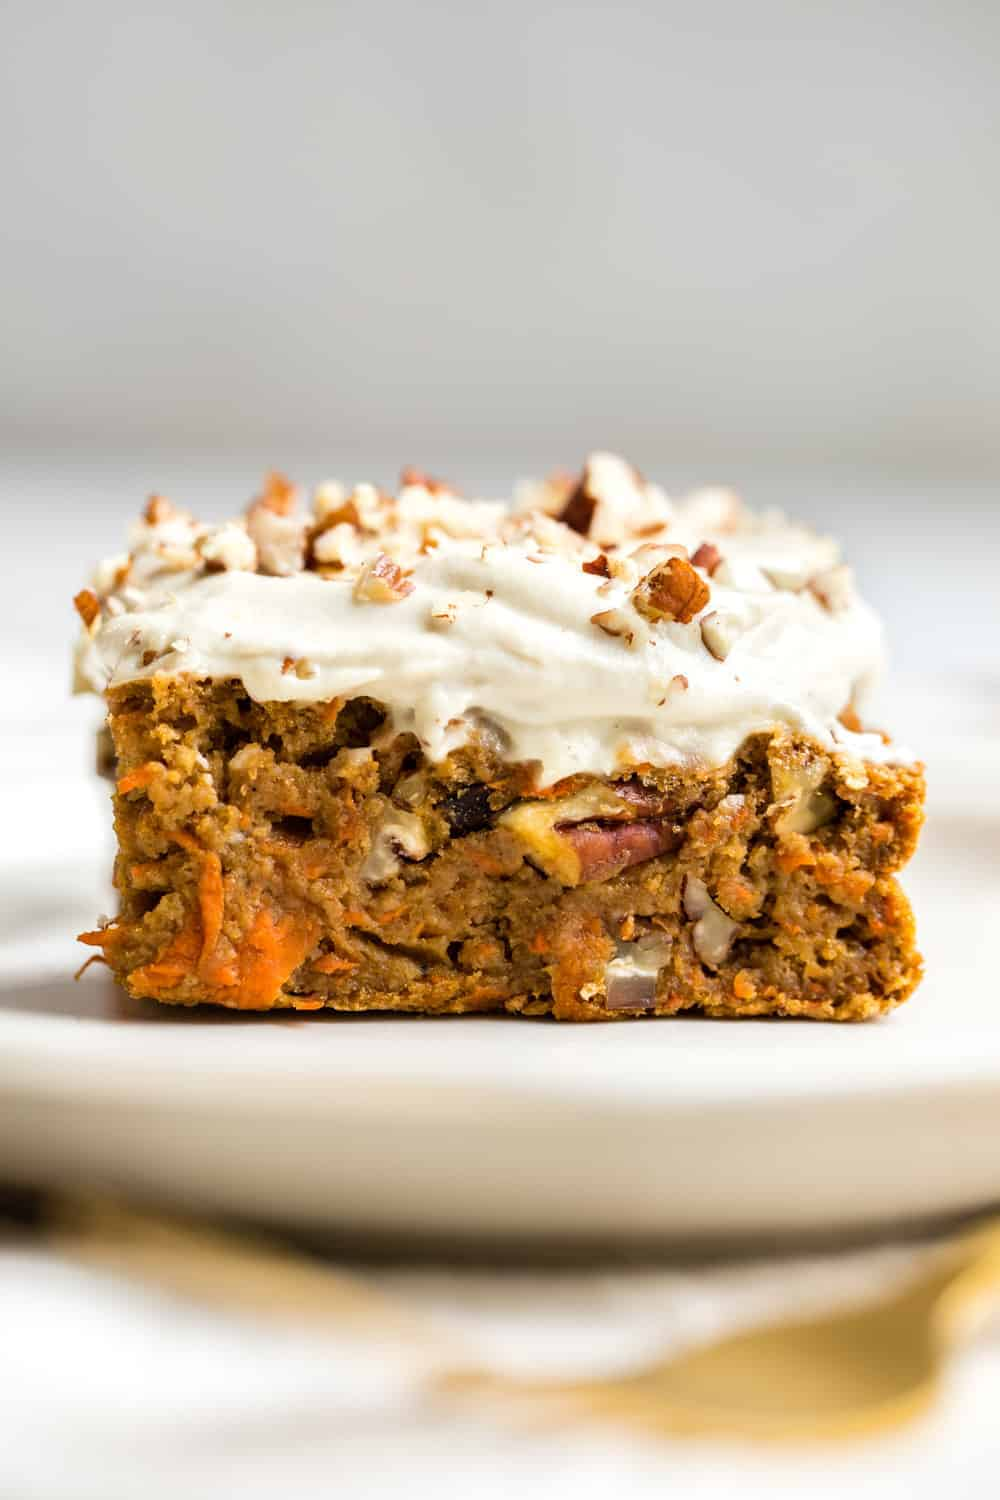 A sliece of vegan carrot cake with white frosting